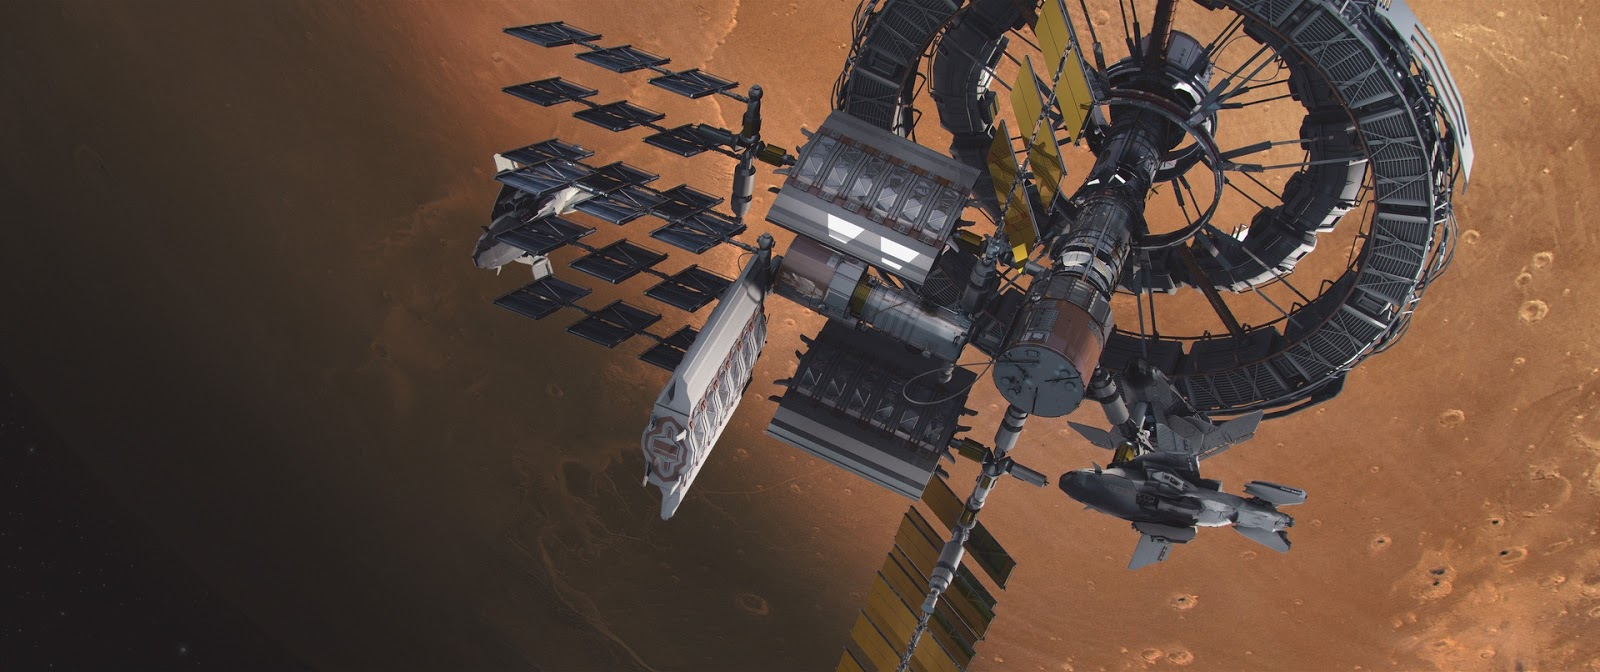 Space station orbiting Mars by Brad Wright